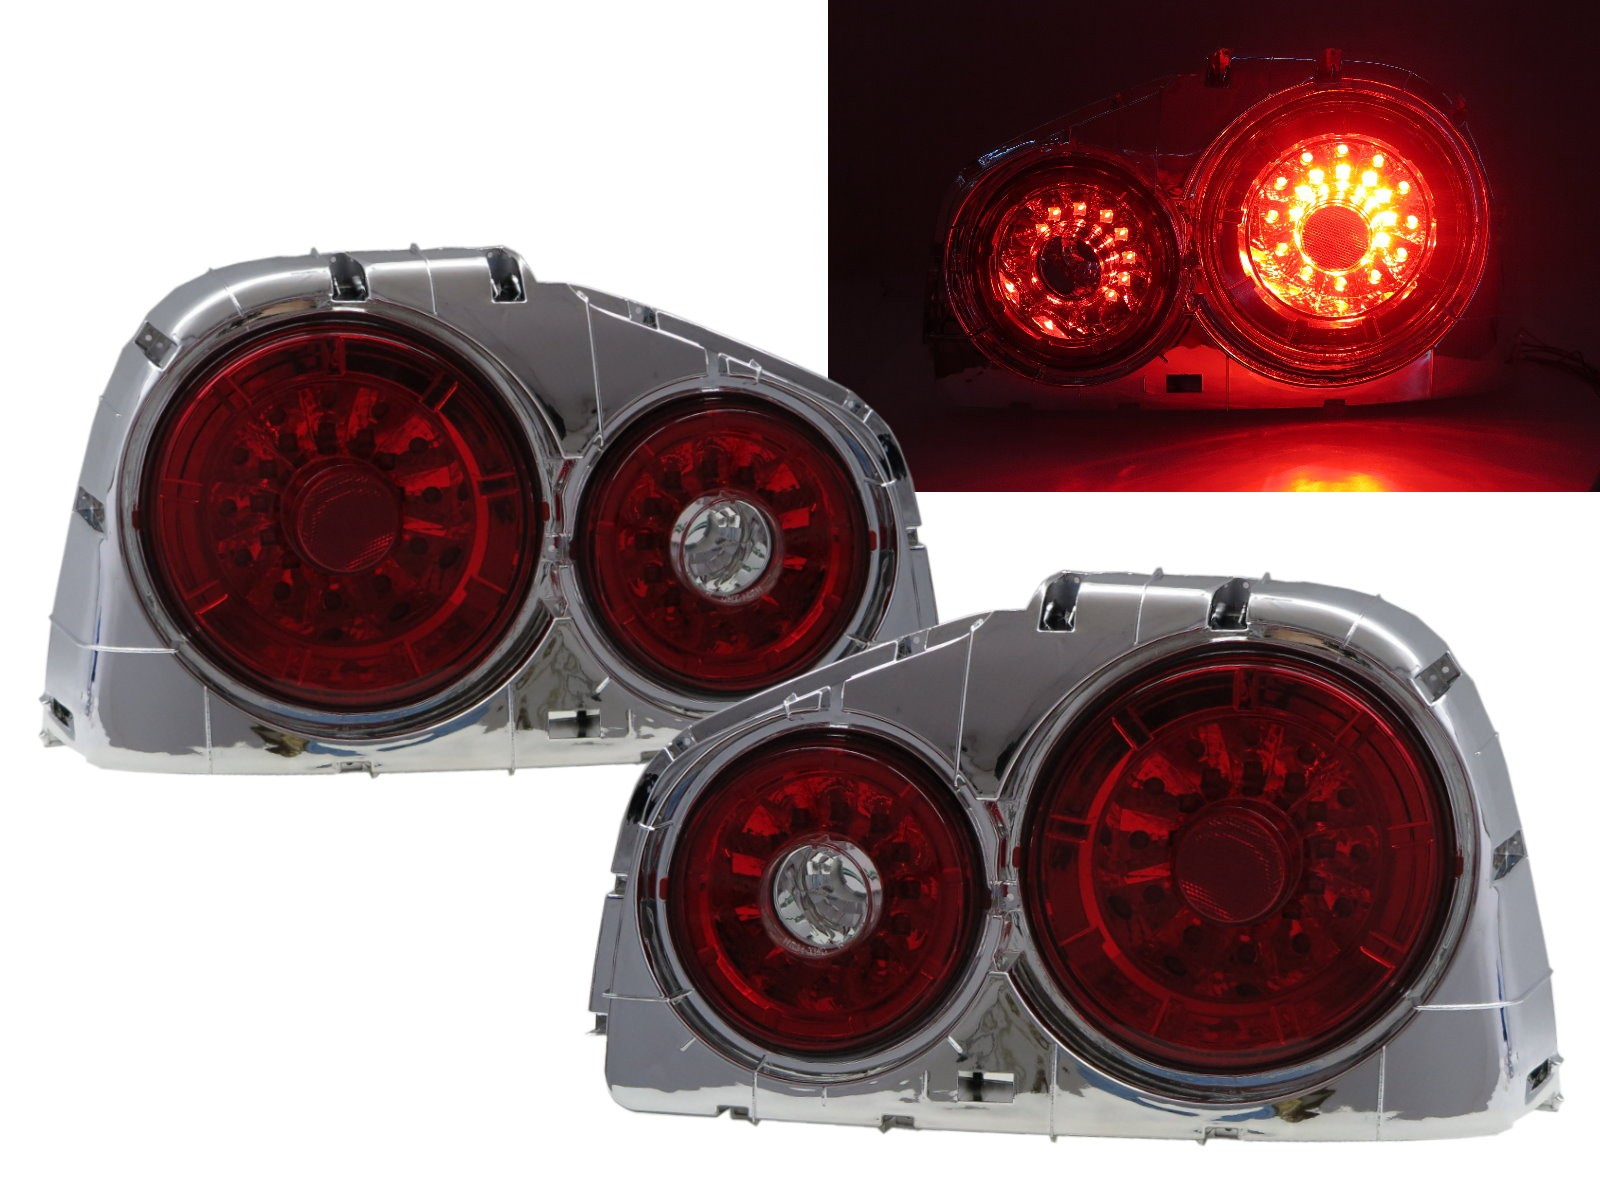 CrazyTheGod Skyline R34 1999-2002 Coupe 2D LED Tail Rear Light Red/Chrome for NISSAN